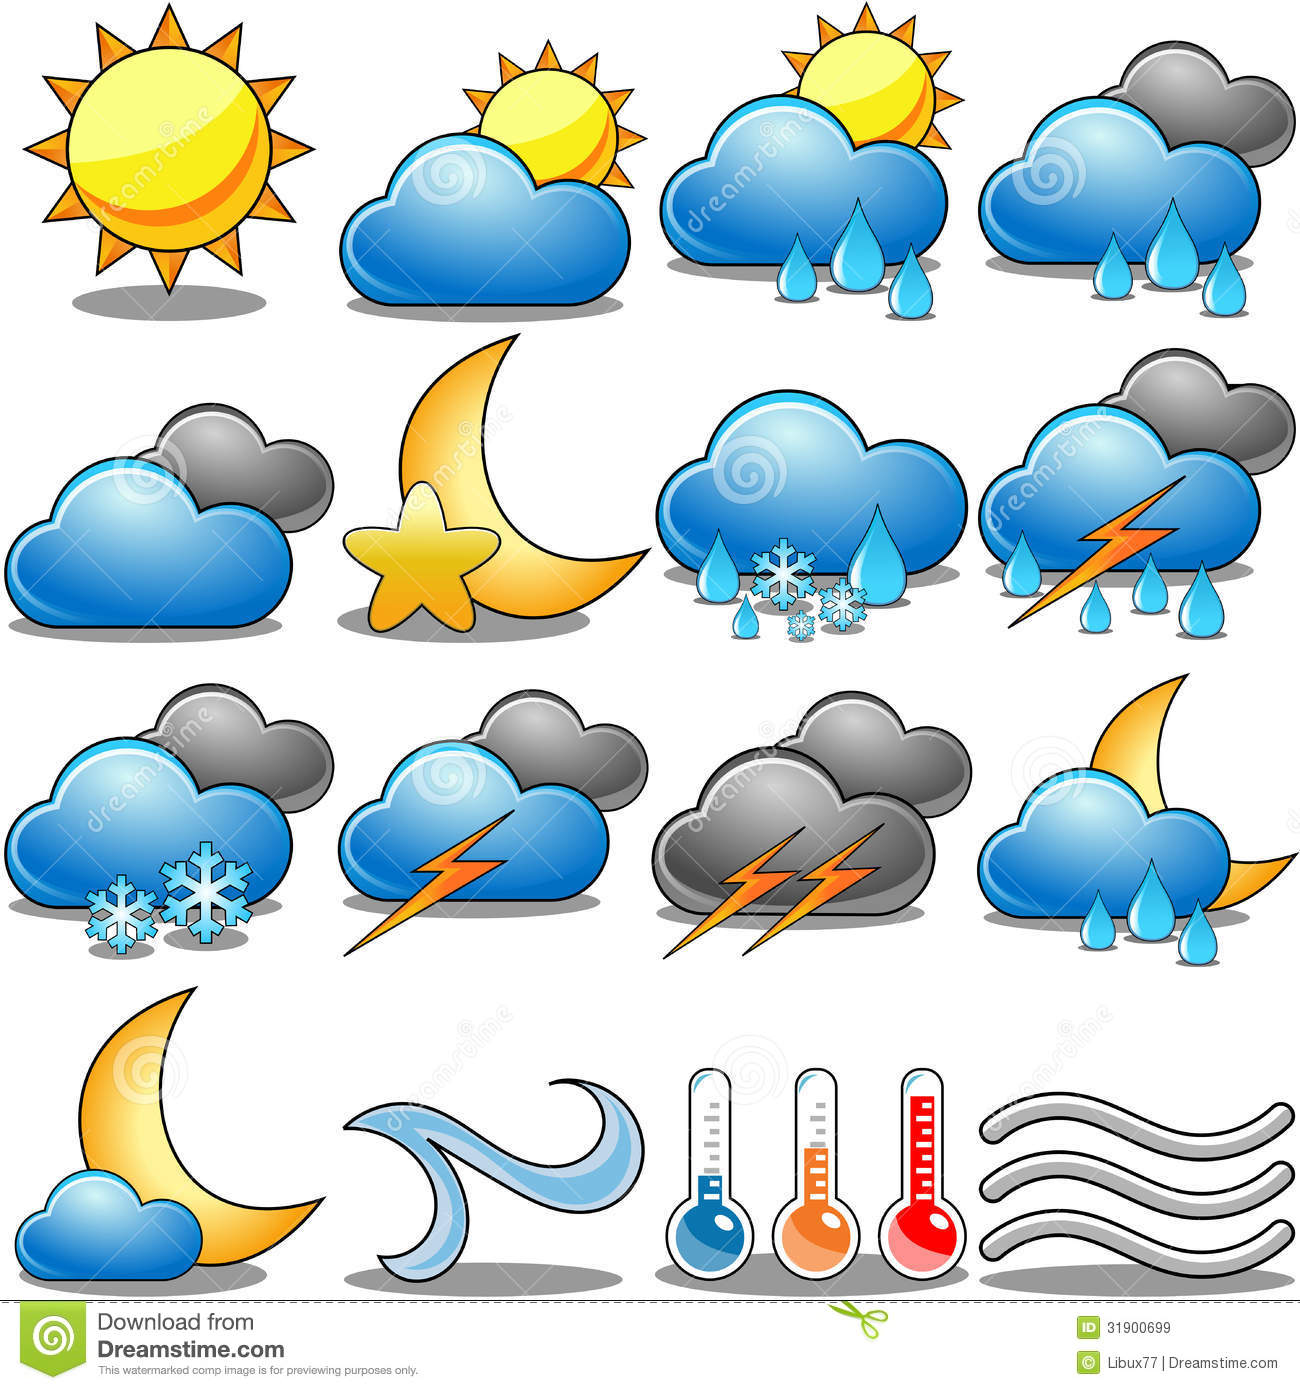 weather icon set royalty free stock images image 31900699 storm cloud clipart storm cloud with lightning clipart